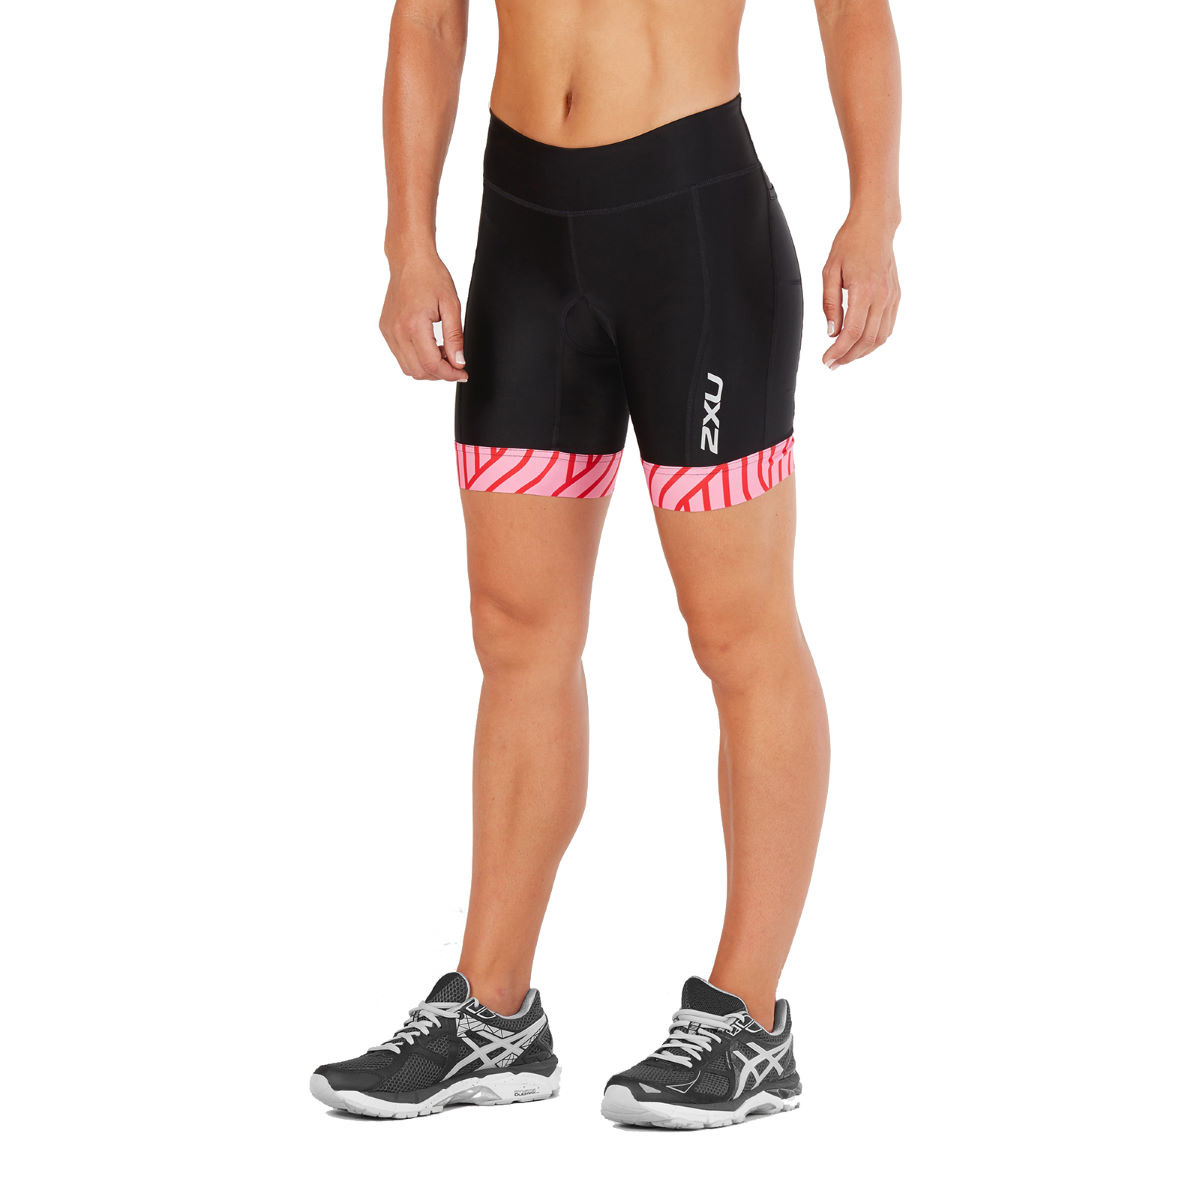 "2XU Women's Perform Tri 7"" Short - Culotes de triatlón"